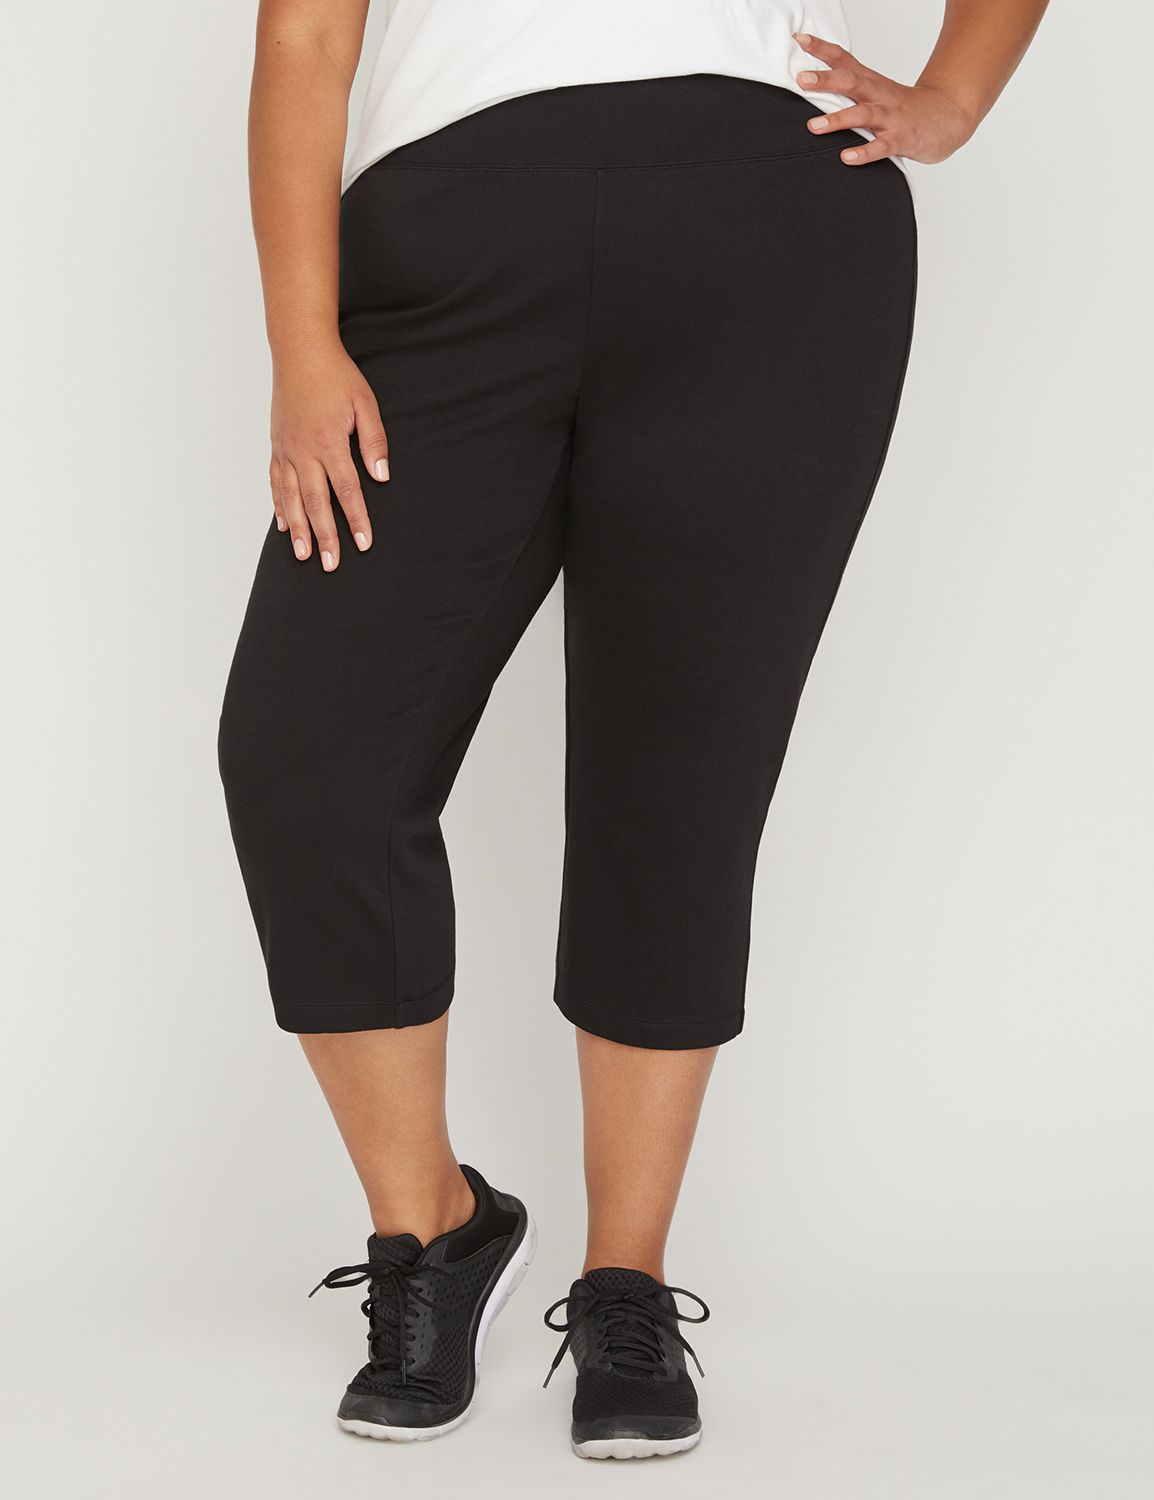 Yoga Capri Yoga Capri MP-300054225